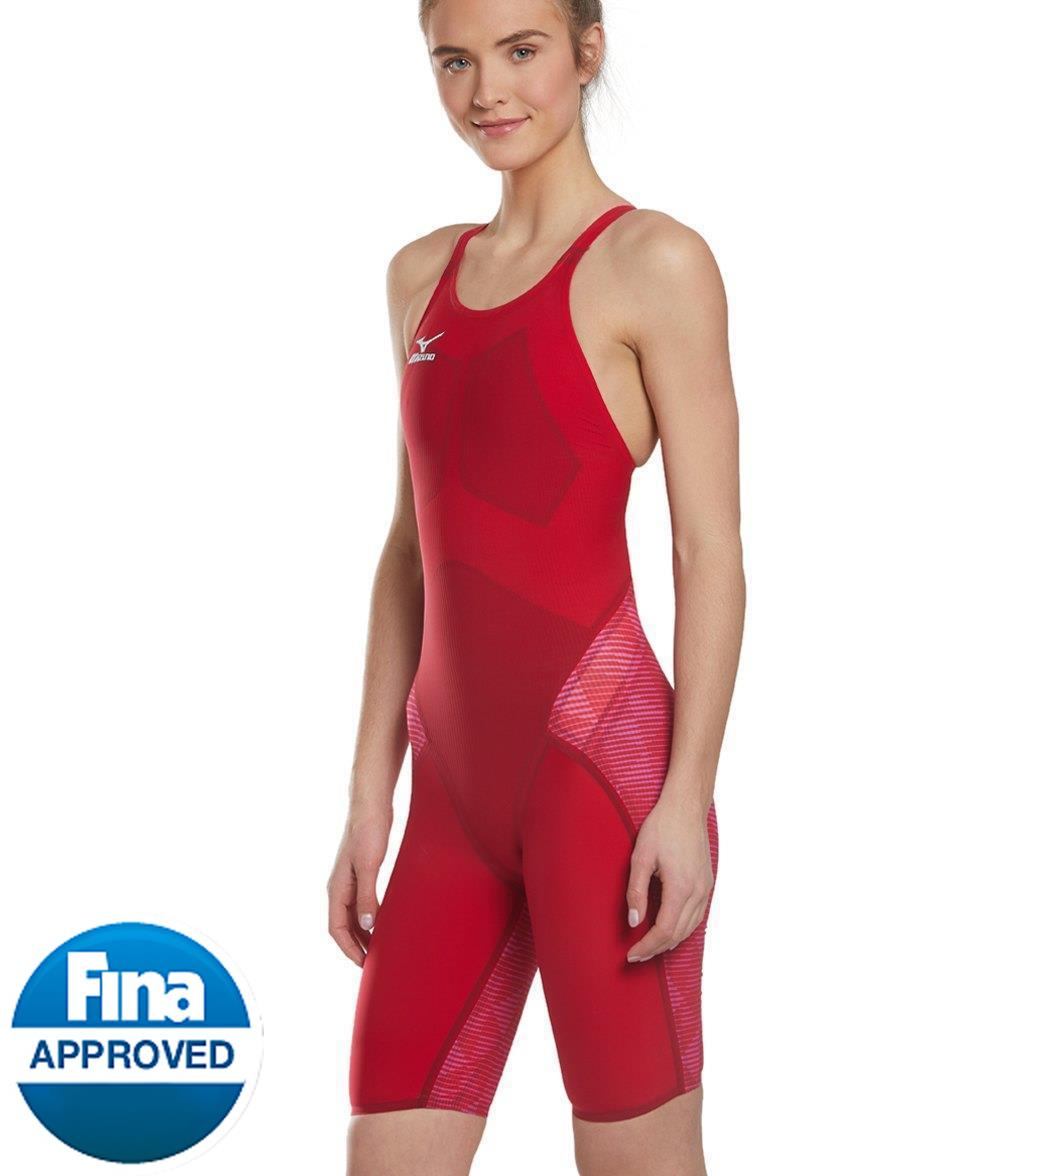 ead4c0e71021c Mizuno Women s GX-Sonic III ST Elite Kneeskin Tech Suit Swimsuit at ...